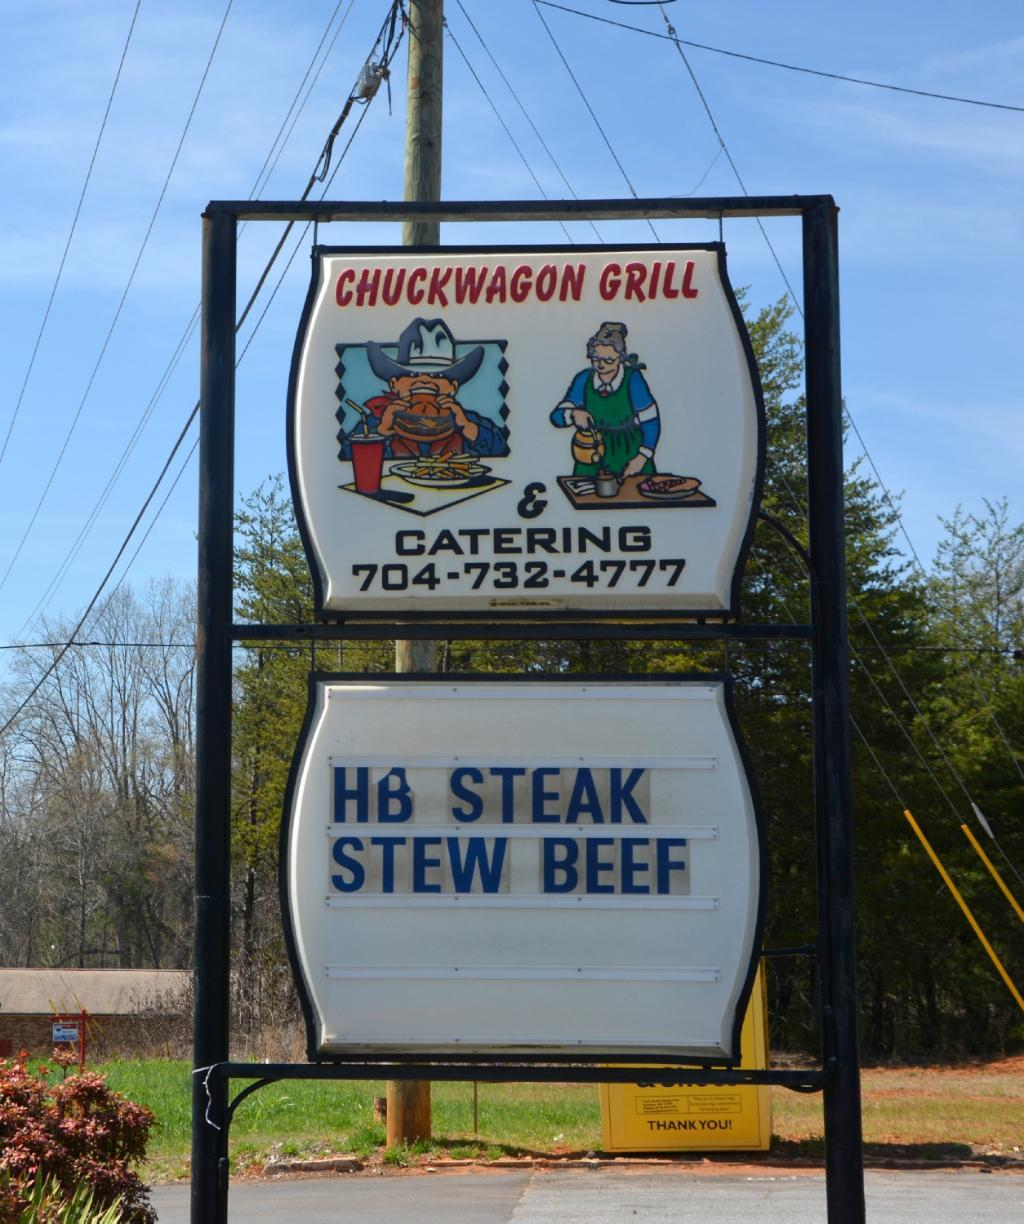 Chuckwagon Grill